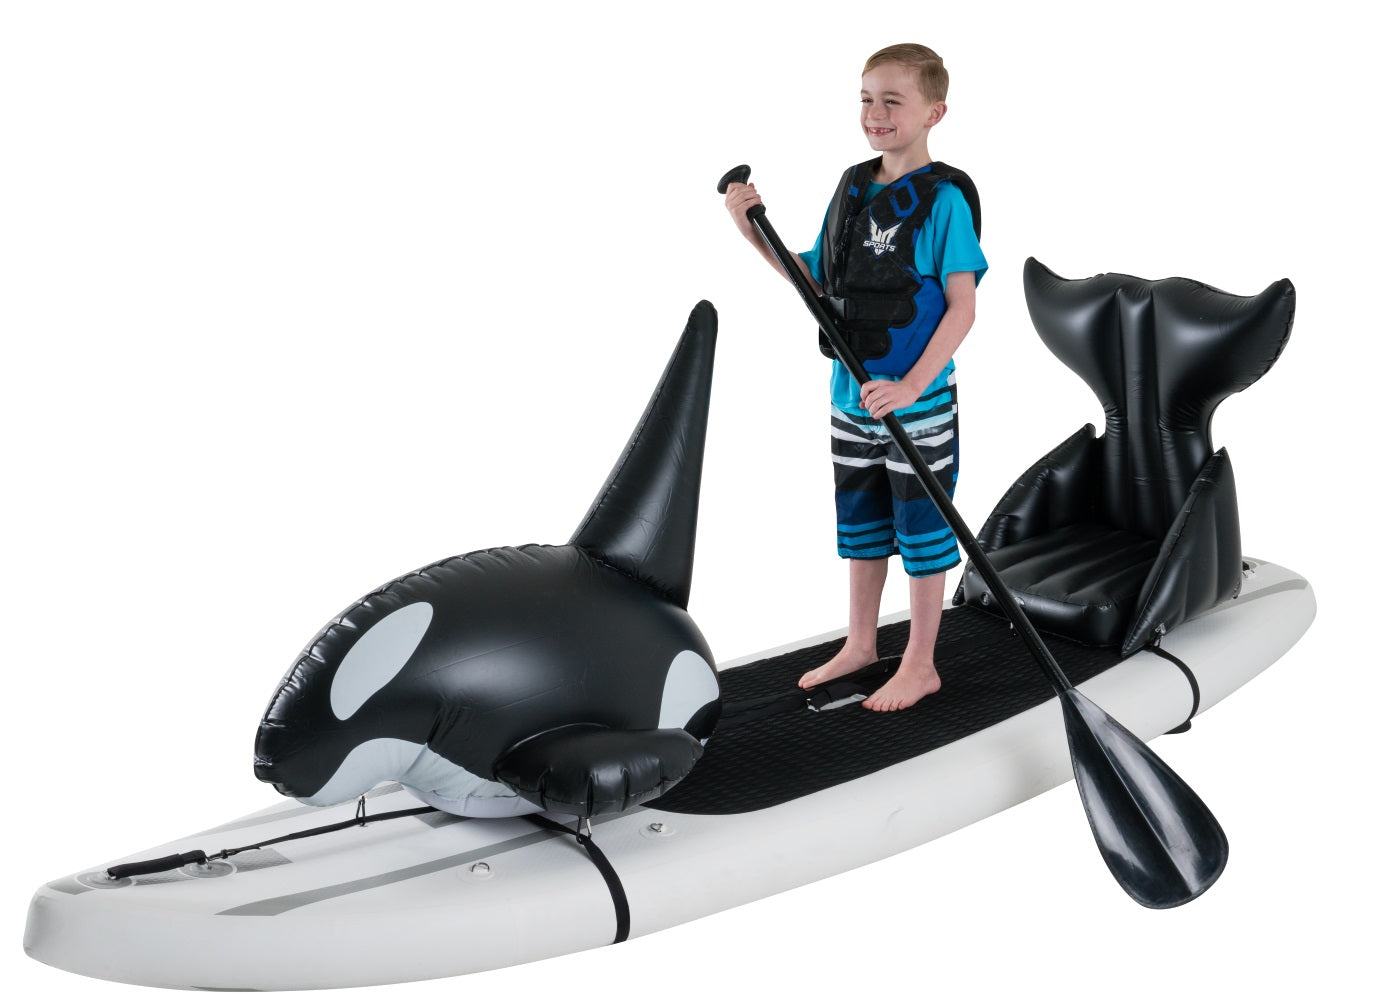 Willy the Orca